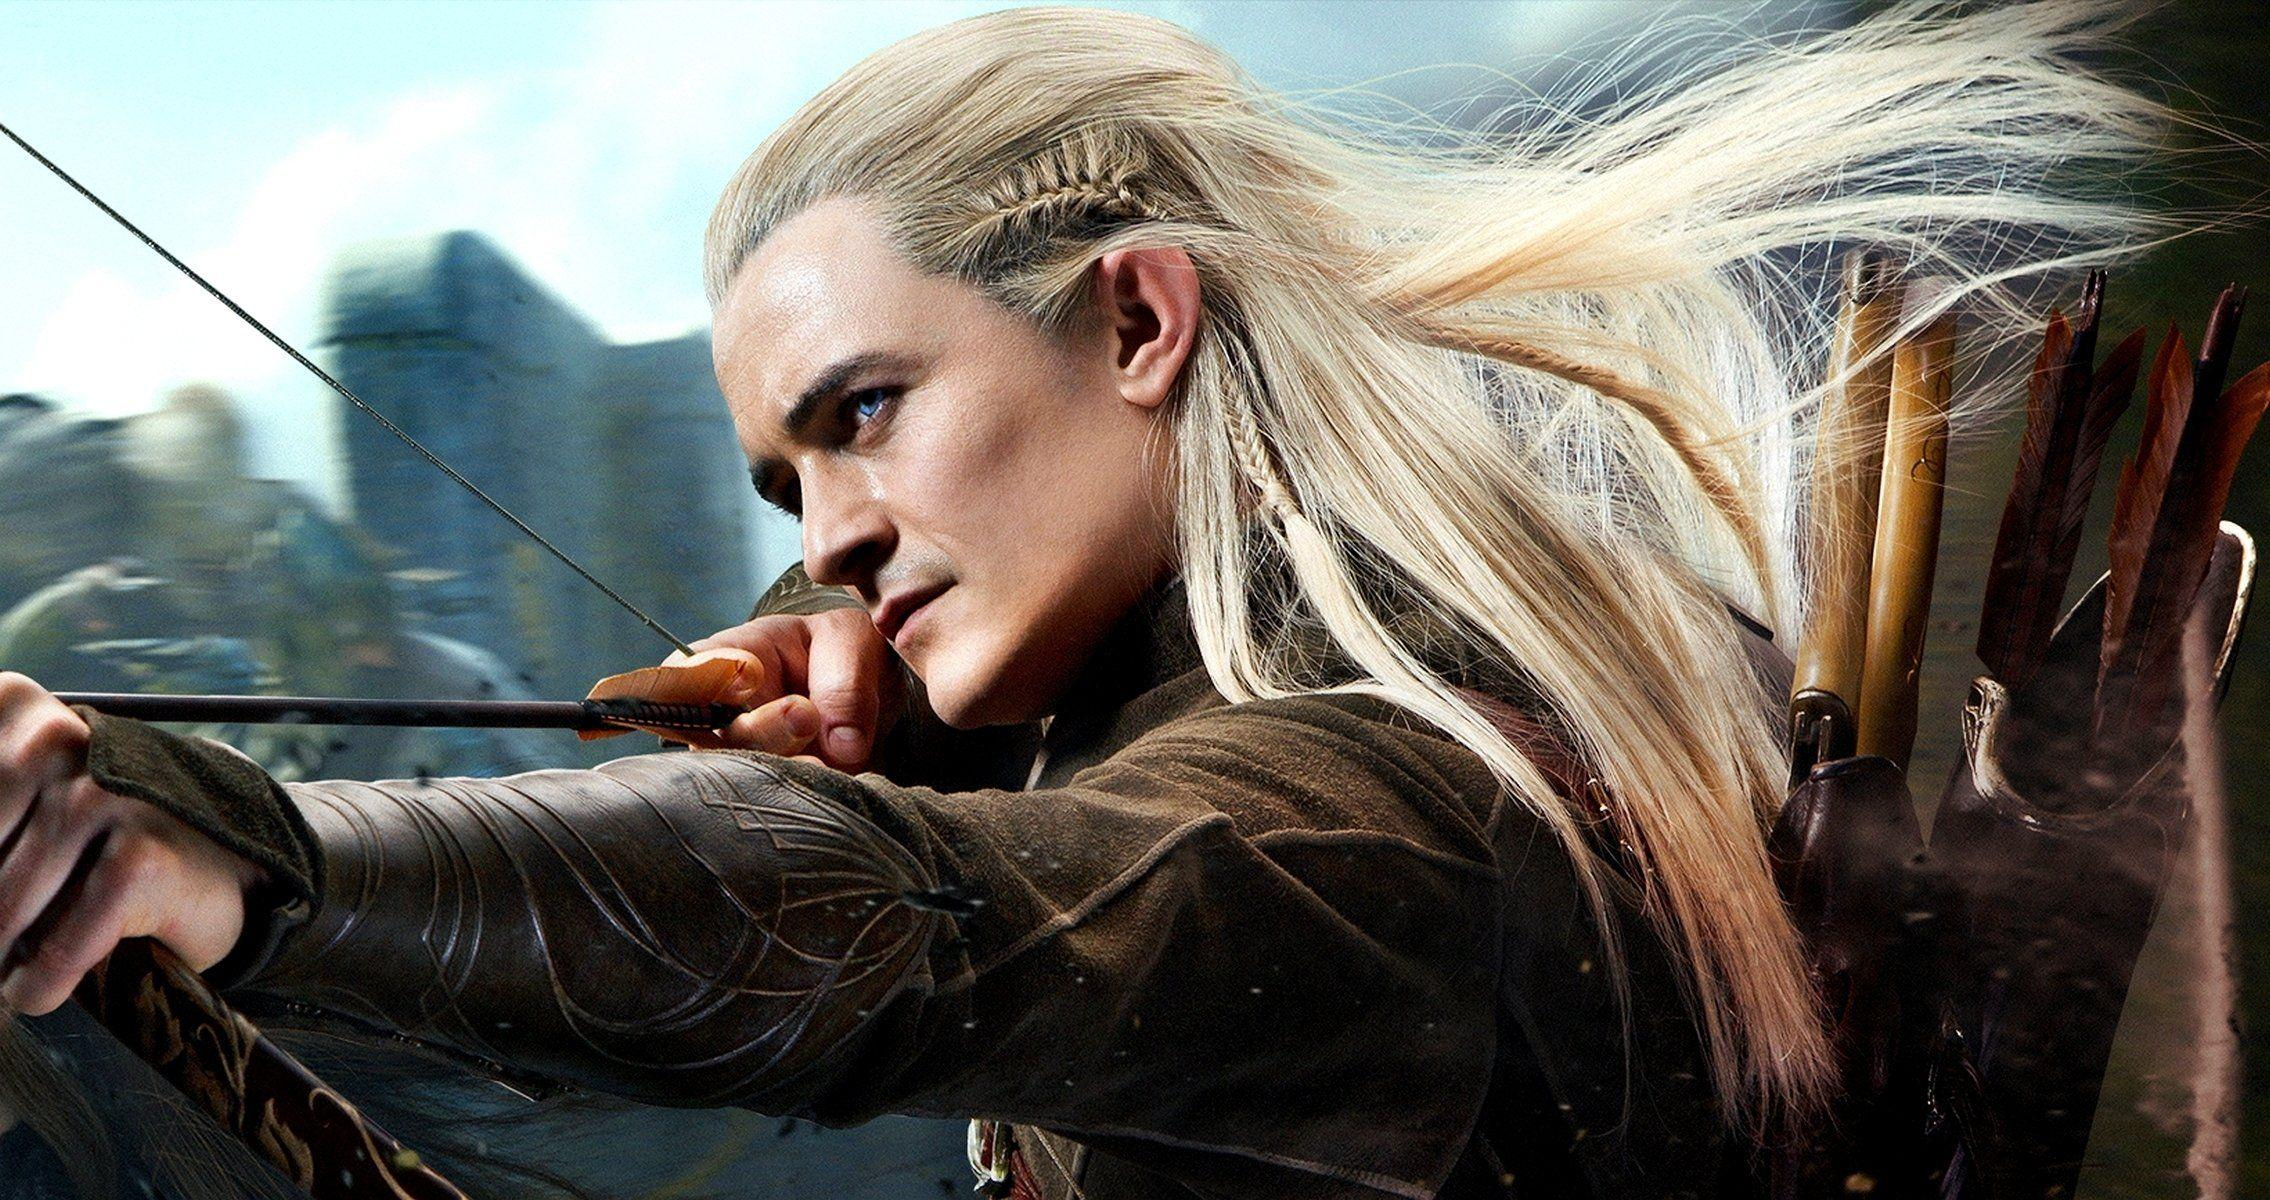 Orlando Bloom As Legolas Greenleaf Legolas Wallpapers - W...